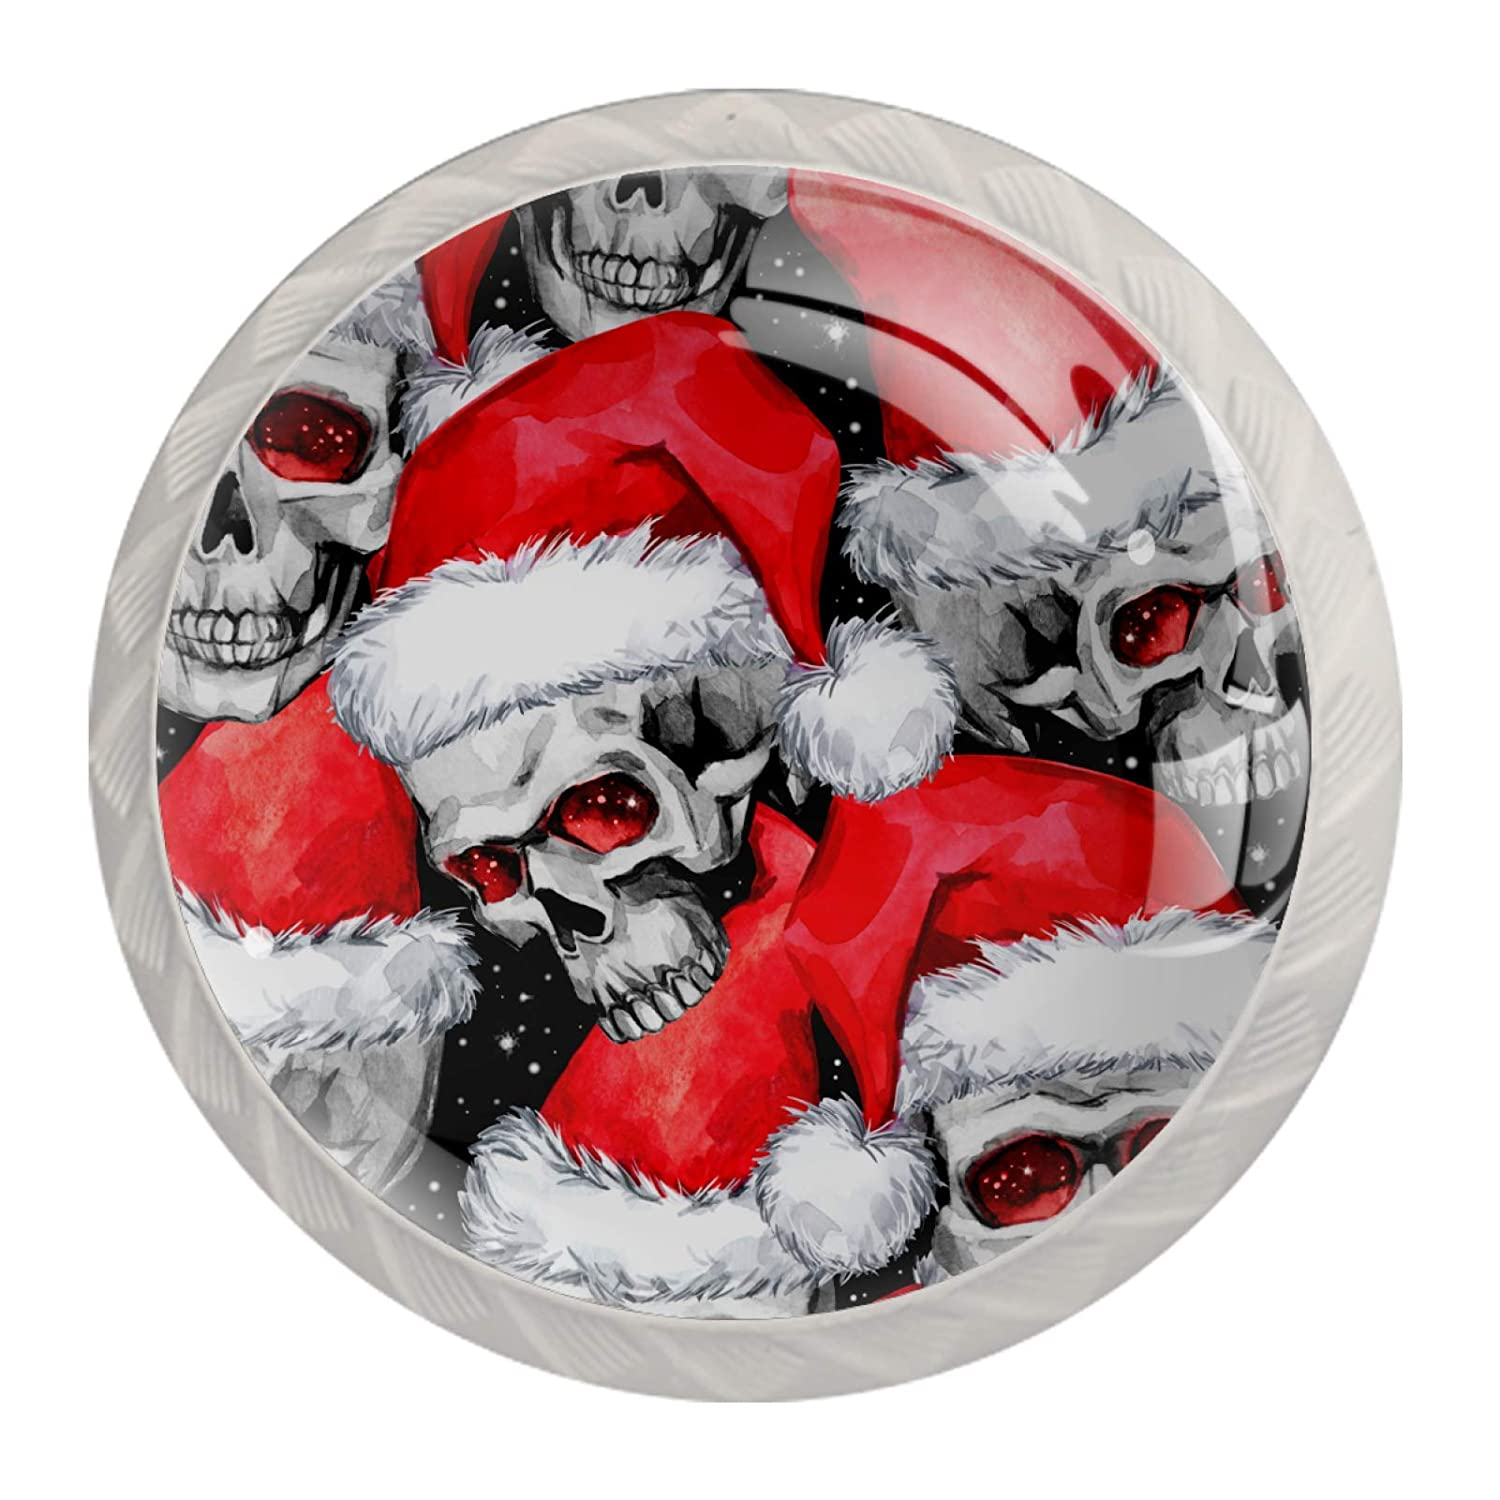 Cabinet Knobs Nashville-Davidson Mall Skull Christmas Dealing full price reduction Hat 4 G Round Crystal pcs Colorful